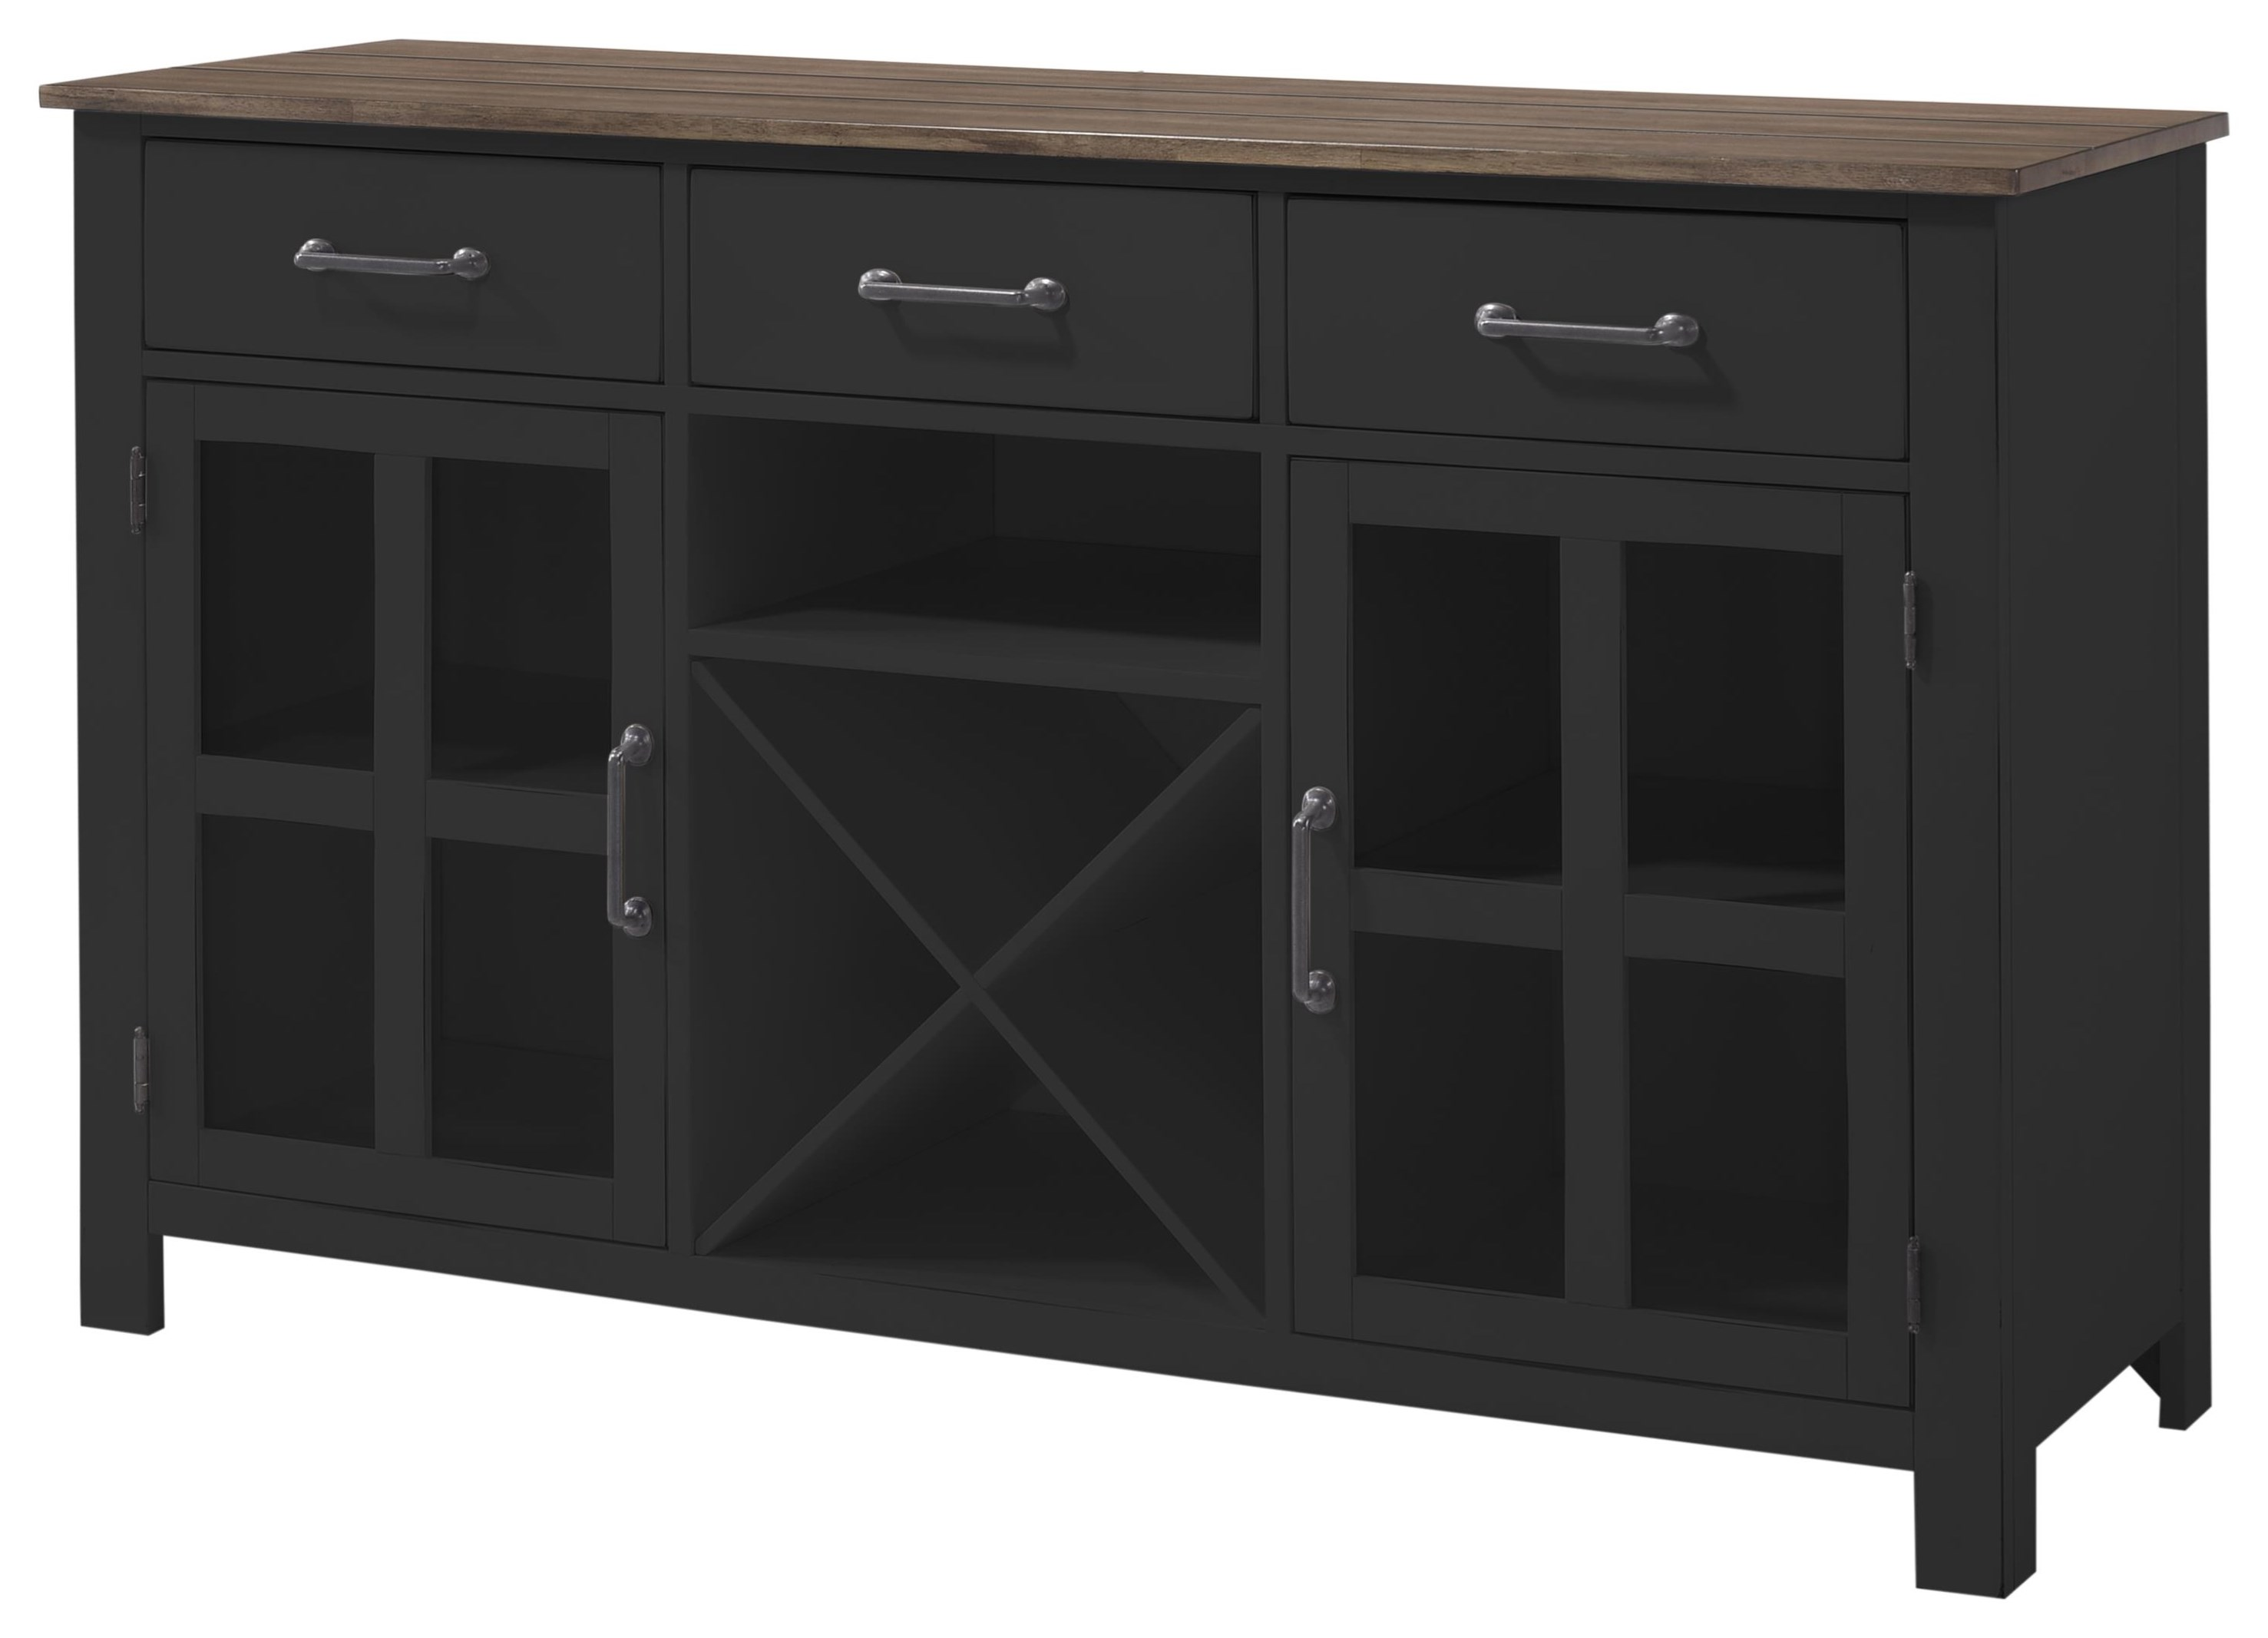 5058 Server by United Furniture Industries at Value City Furniture